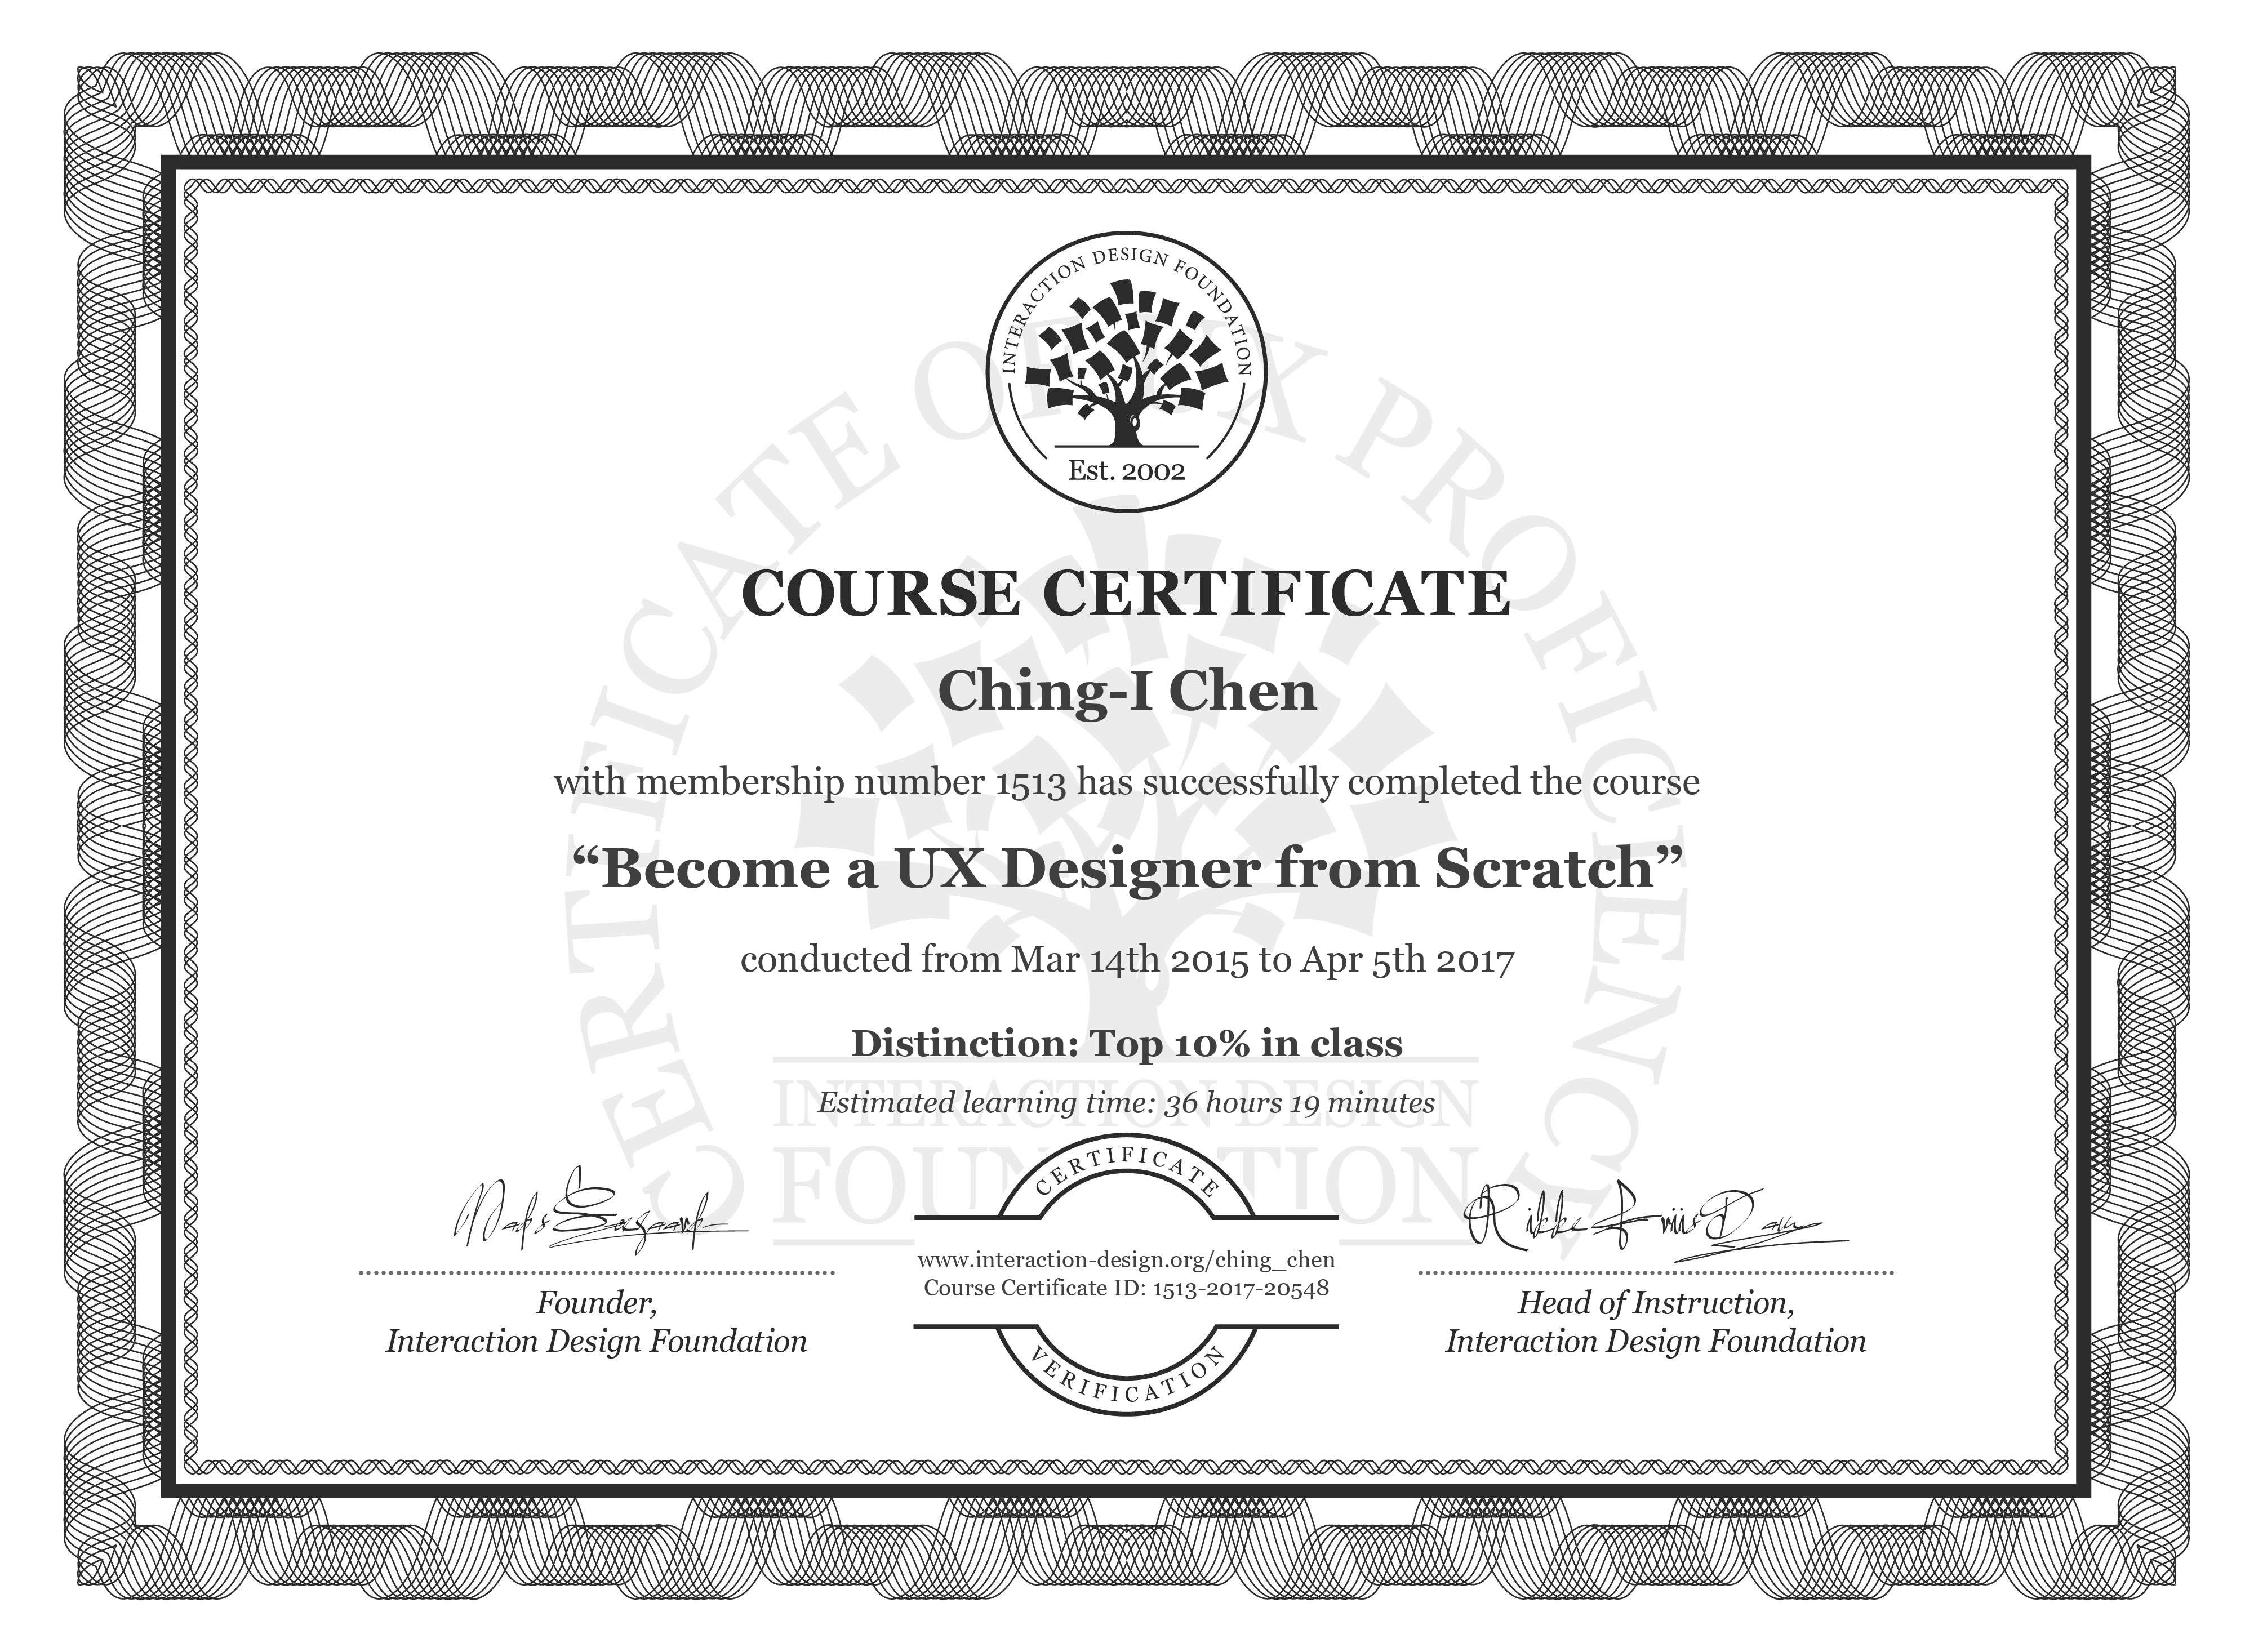 Ching Chen: Course Certificate - Become a UX Designer from Scratch